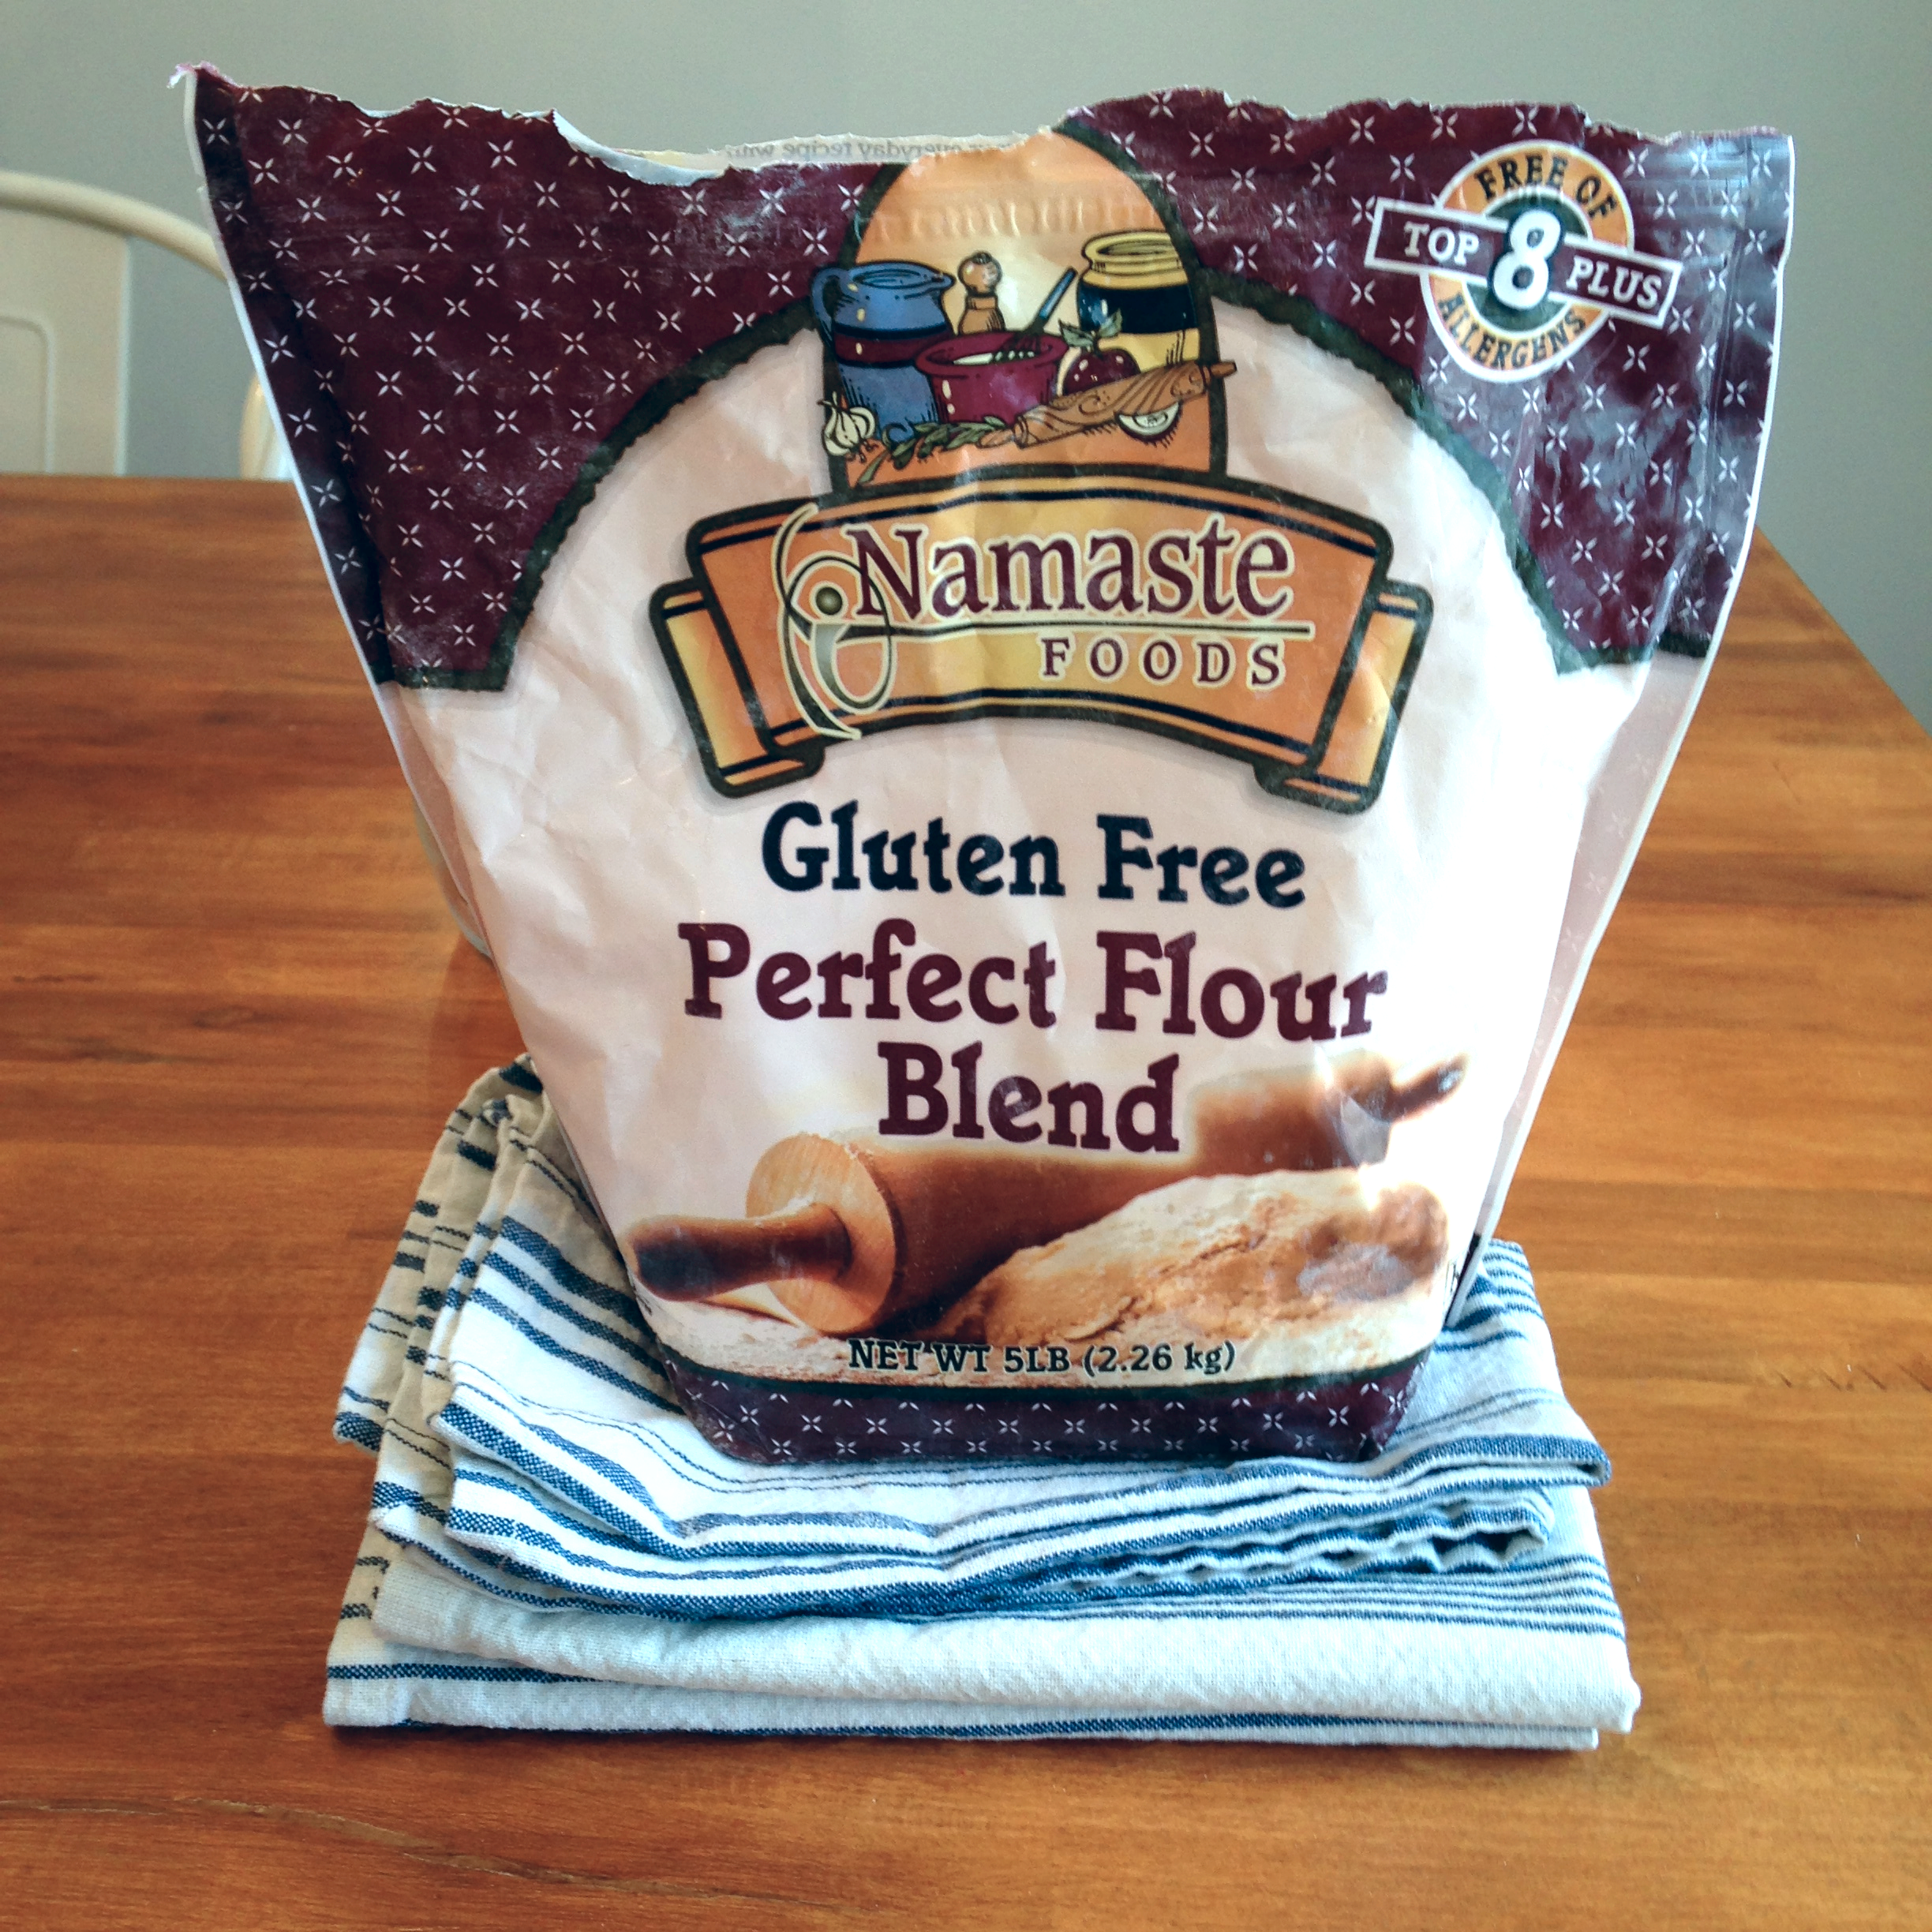 If you don't want to make your own blend, I highly recommend this mix. The texture is very similar to wheat flour, and it doesn't contain potato starch. This brand comes from Costco.